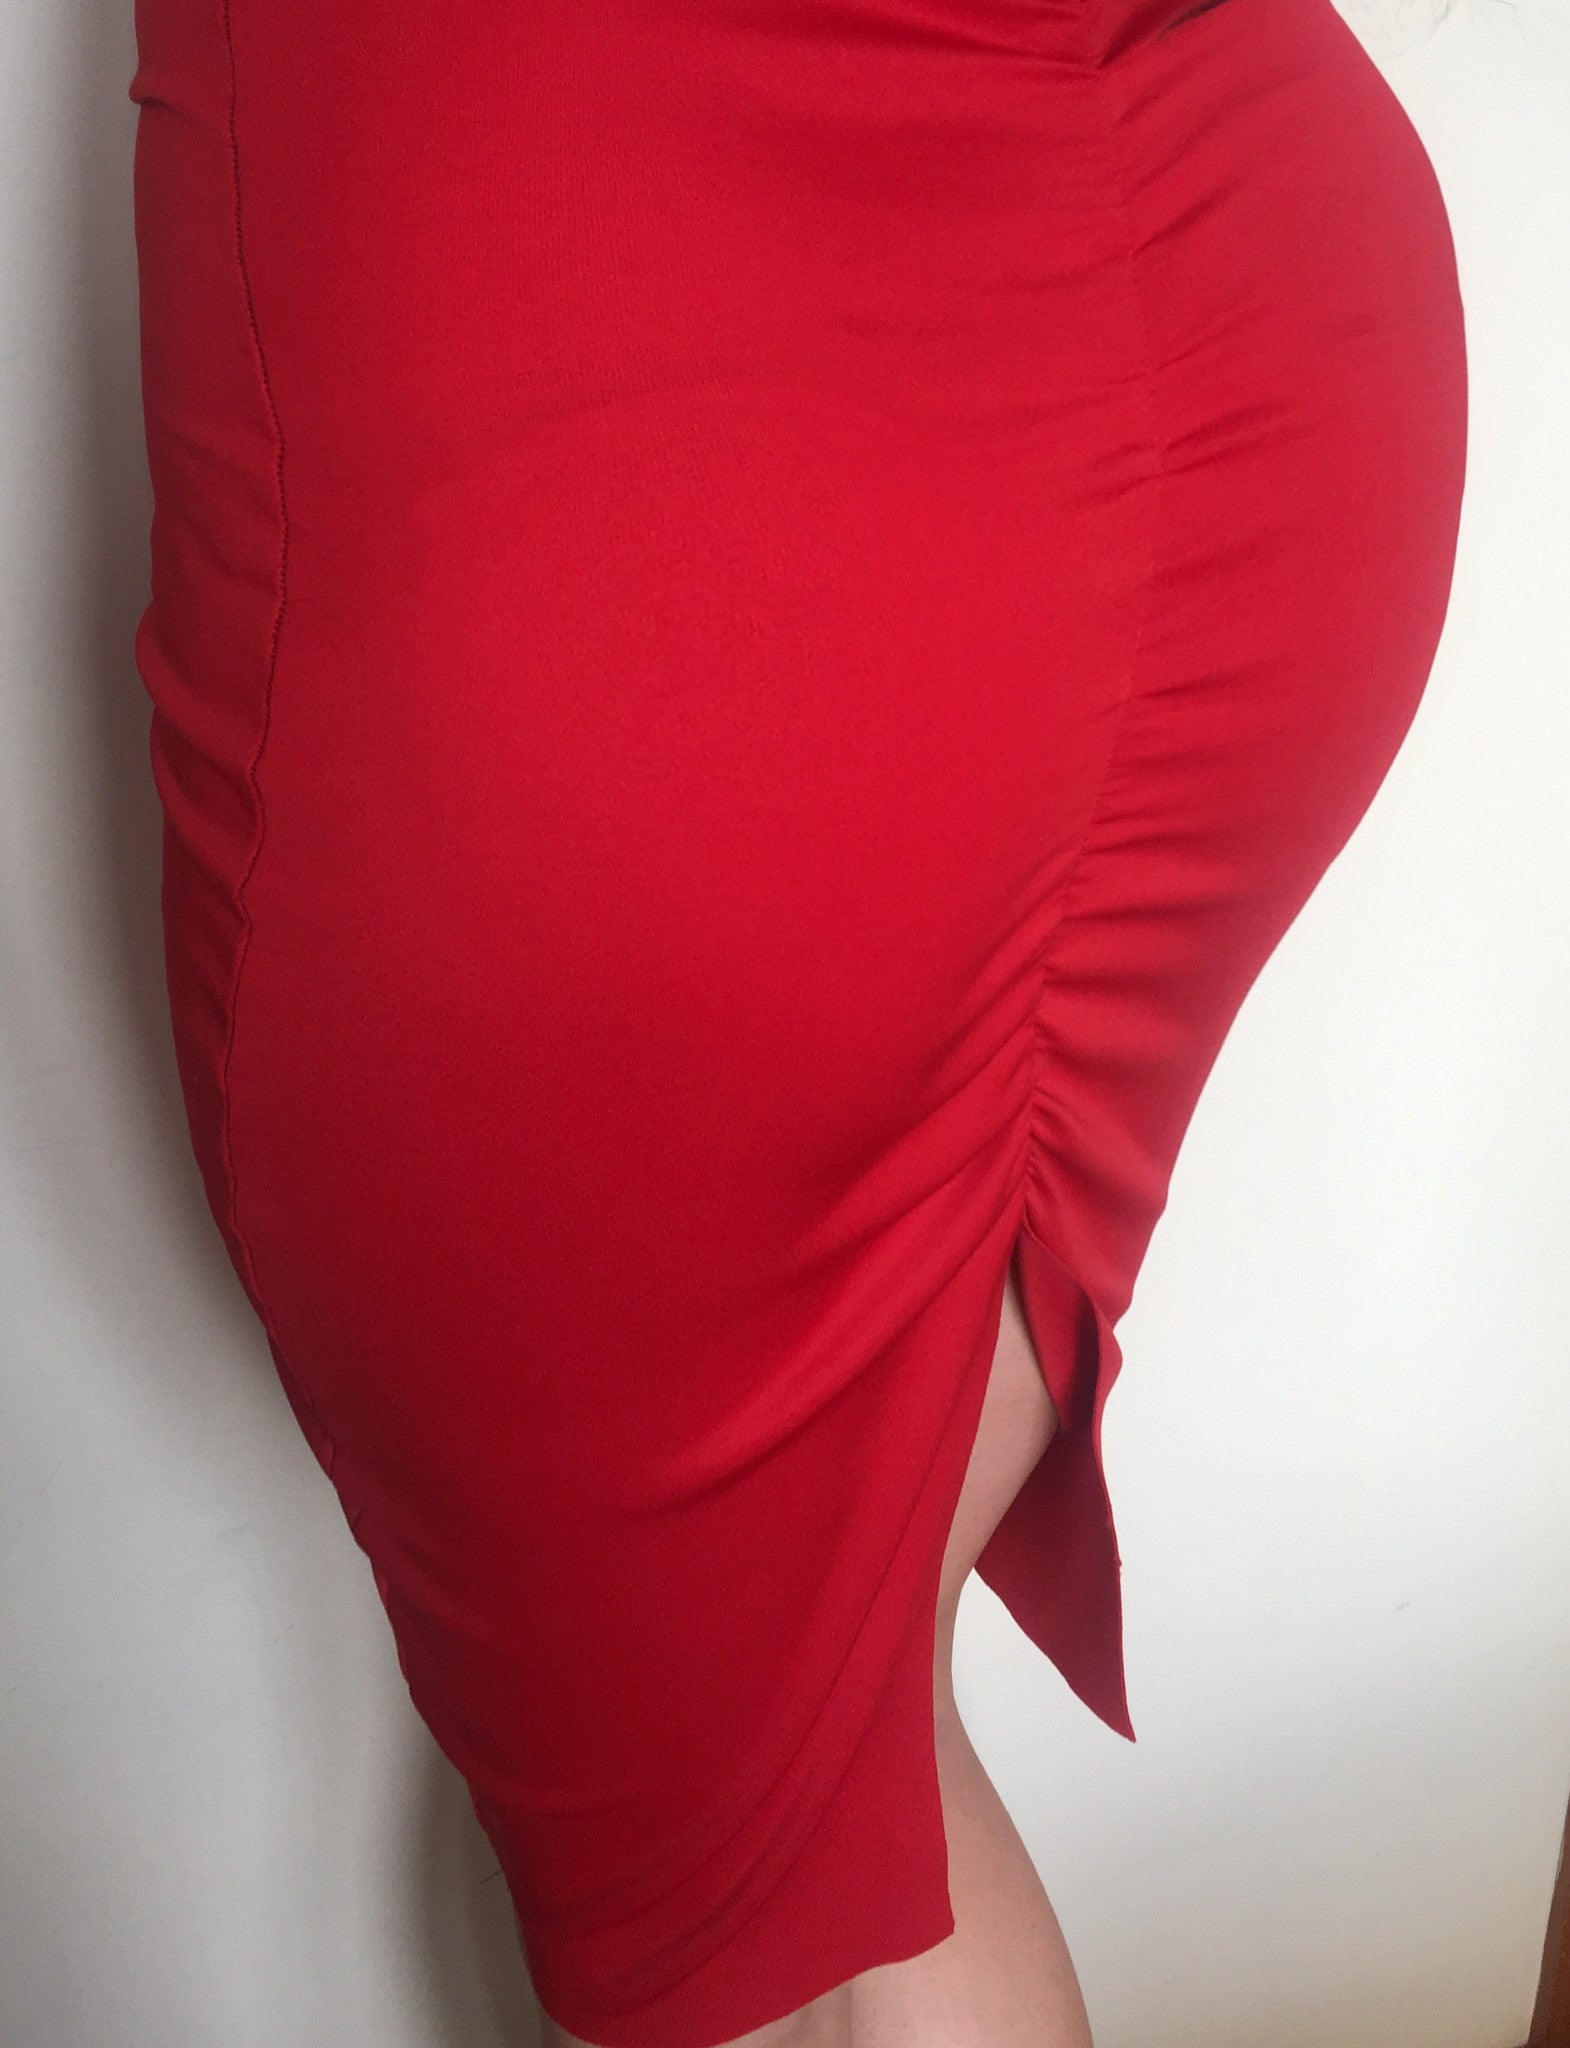 Fitted Red Dresses